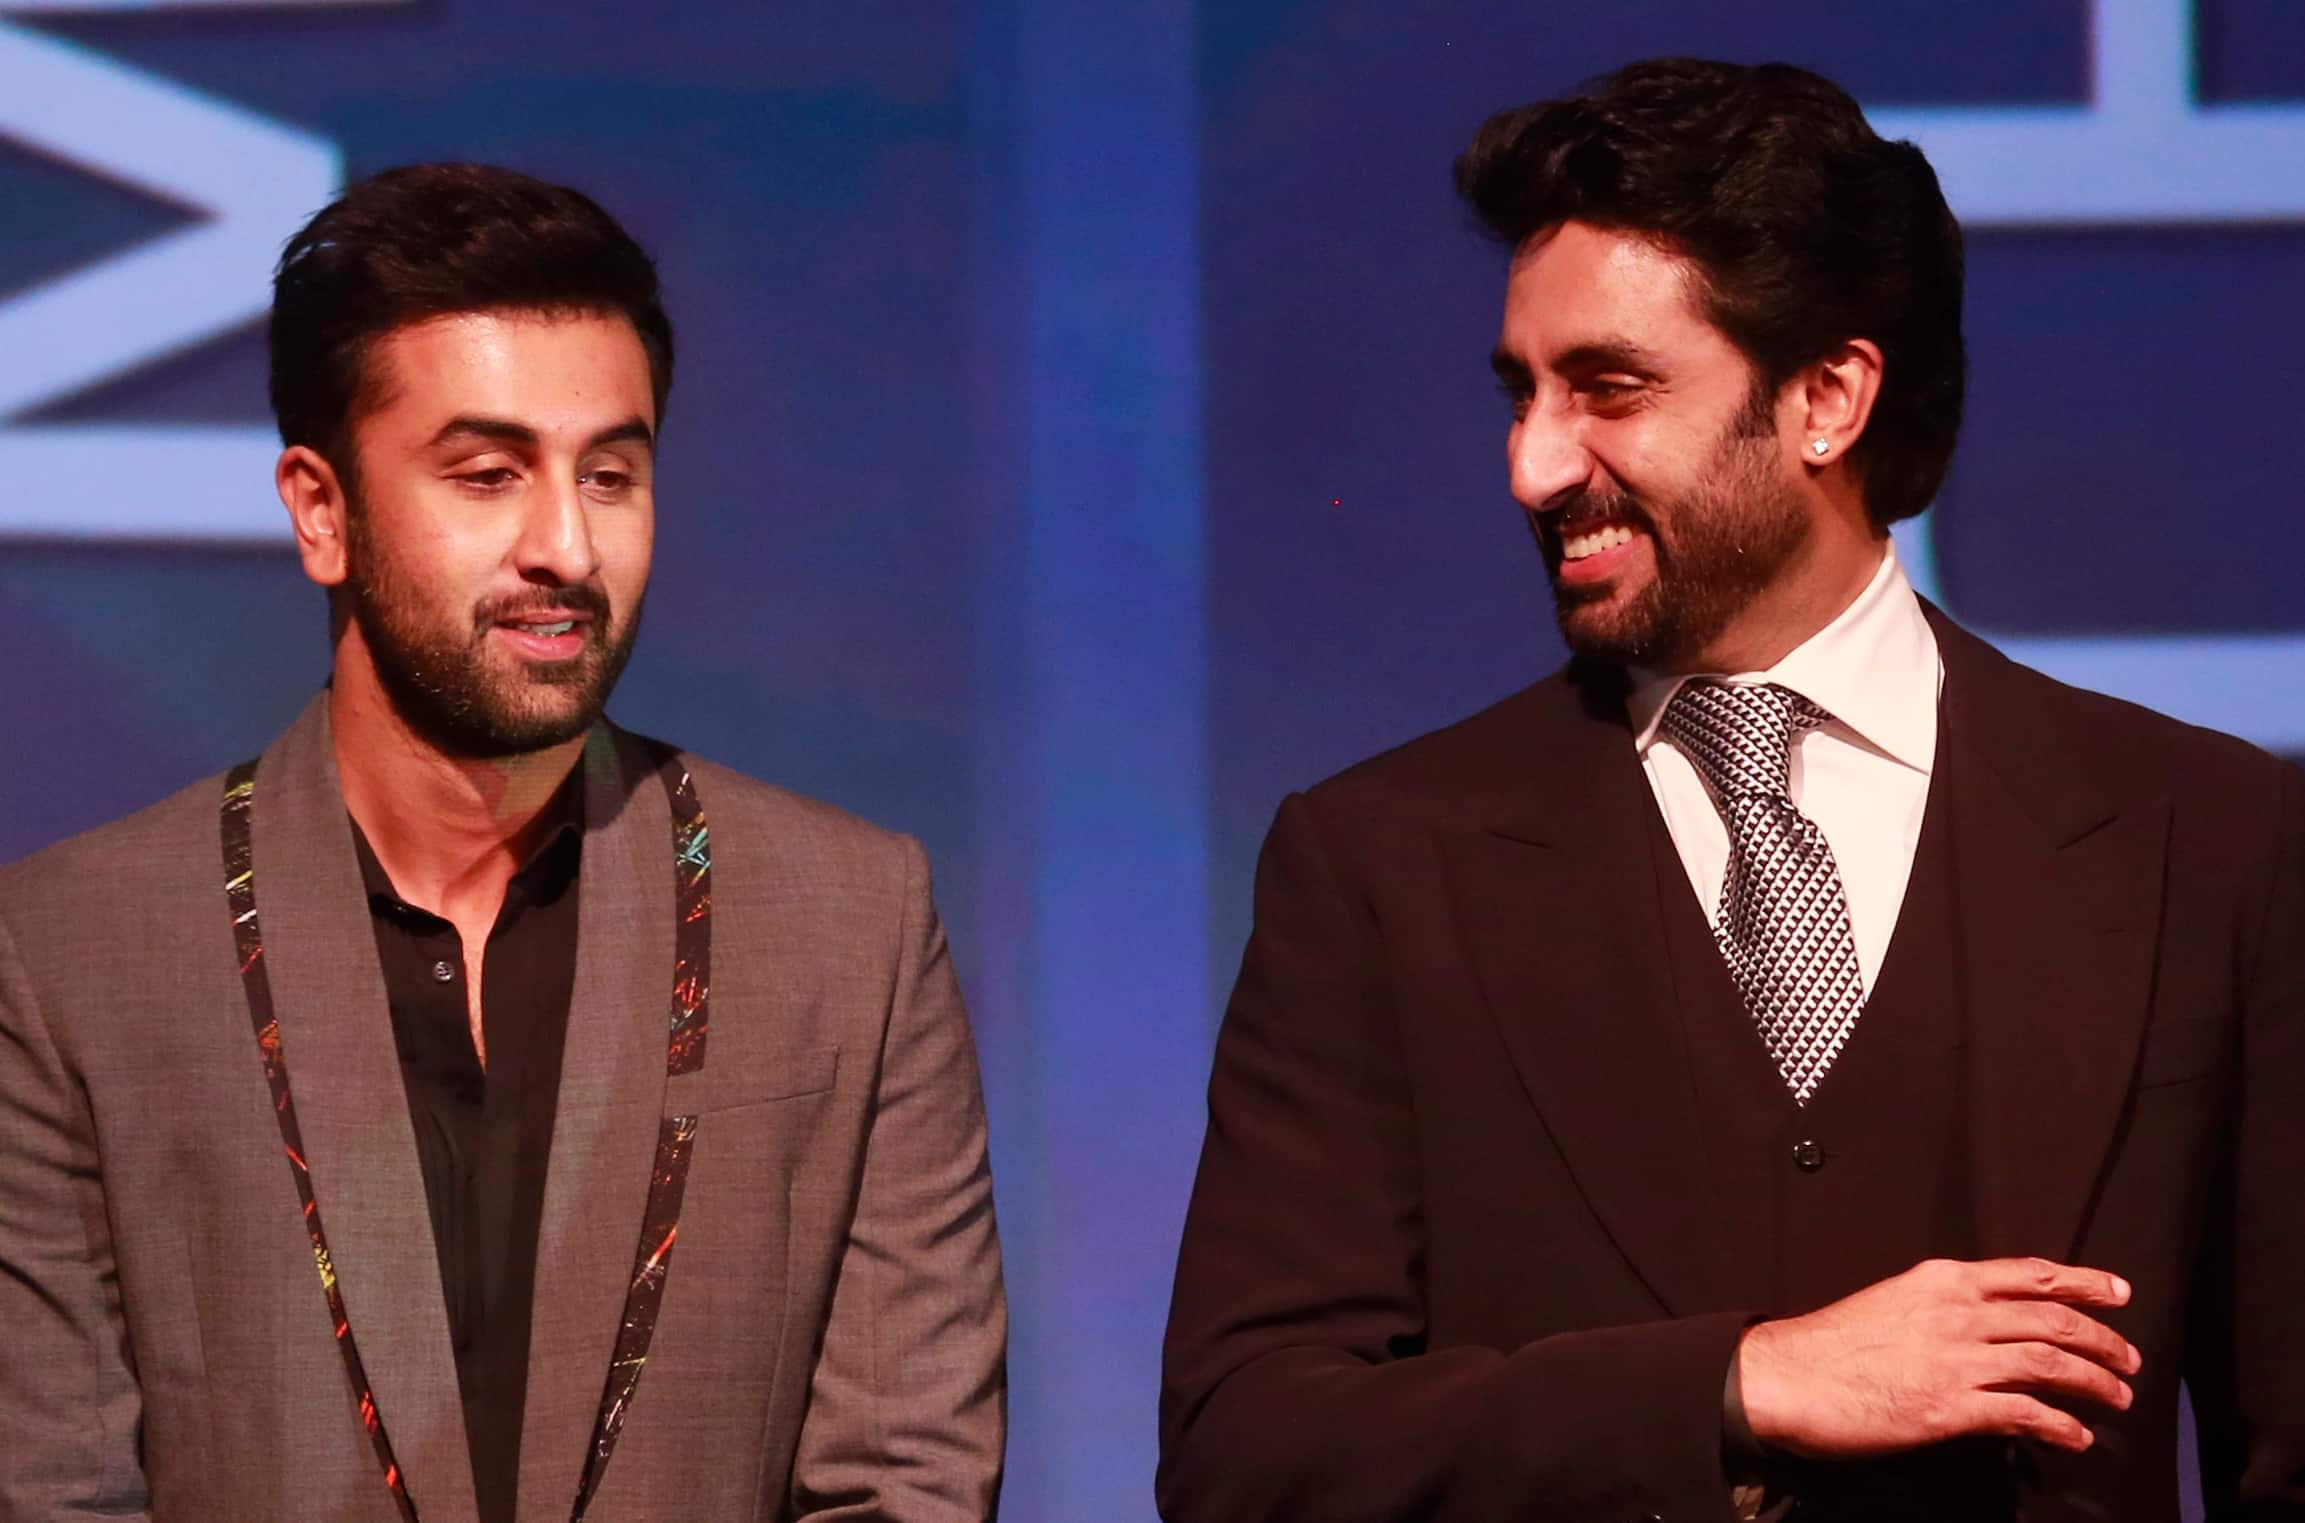 Bollywood actor and co-owner of Mumbai City FC Ranbir Kapoor, listens to Bollywood actor and co-owner of Team Chennai Abhishek Bachchan during the official launch of the Indian Super League (ISL) in Mumbai.